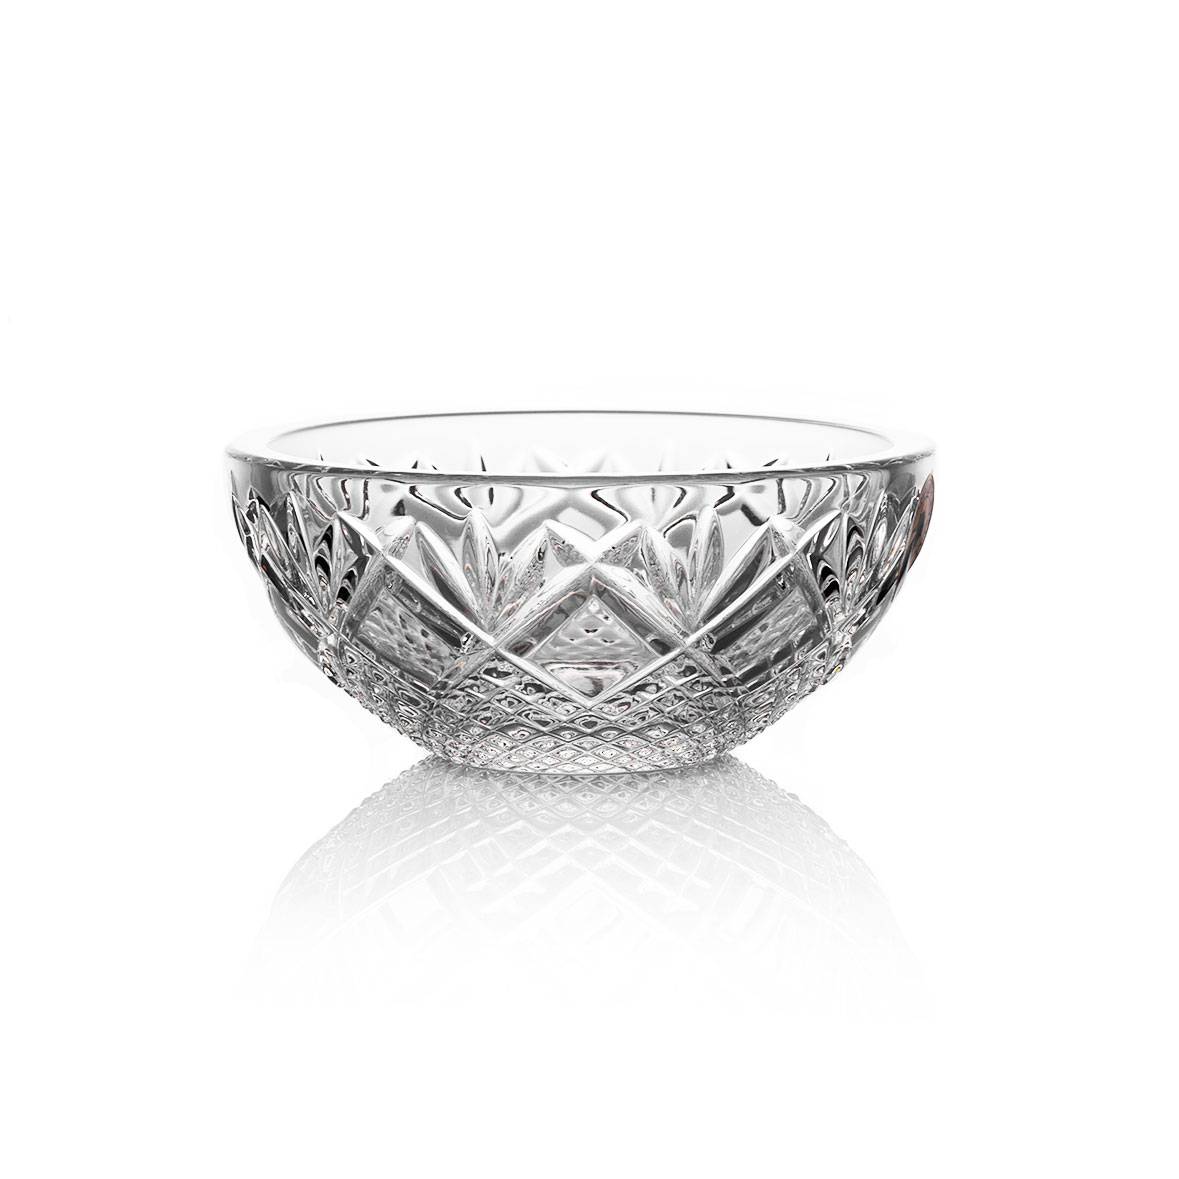 Waterford Crystal Rosalee Ring Bowl